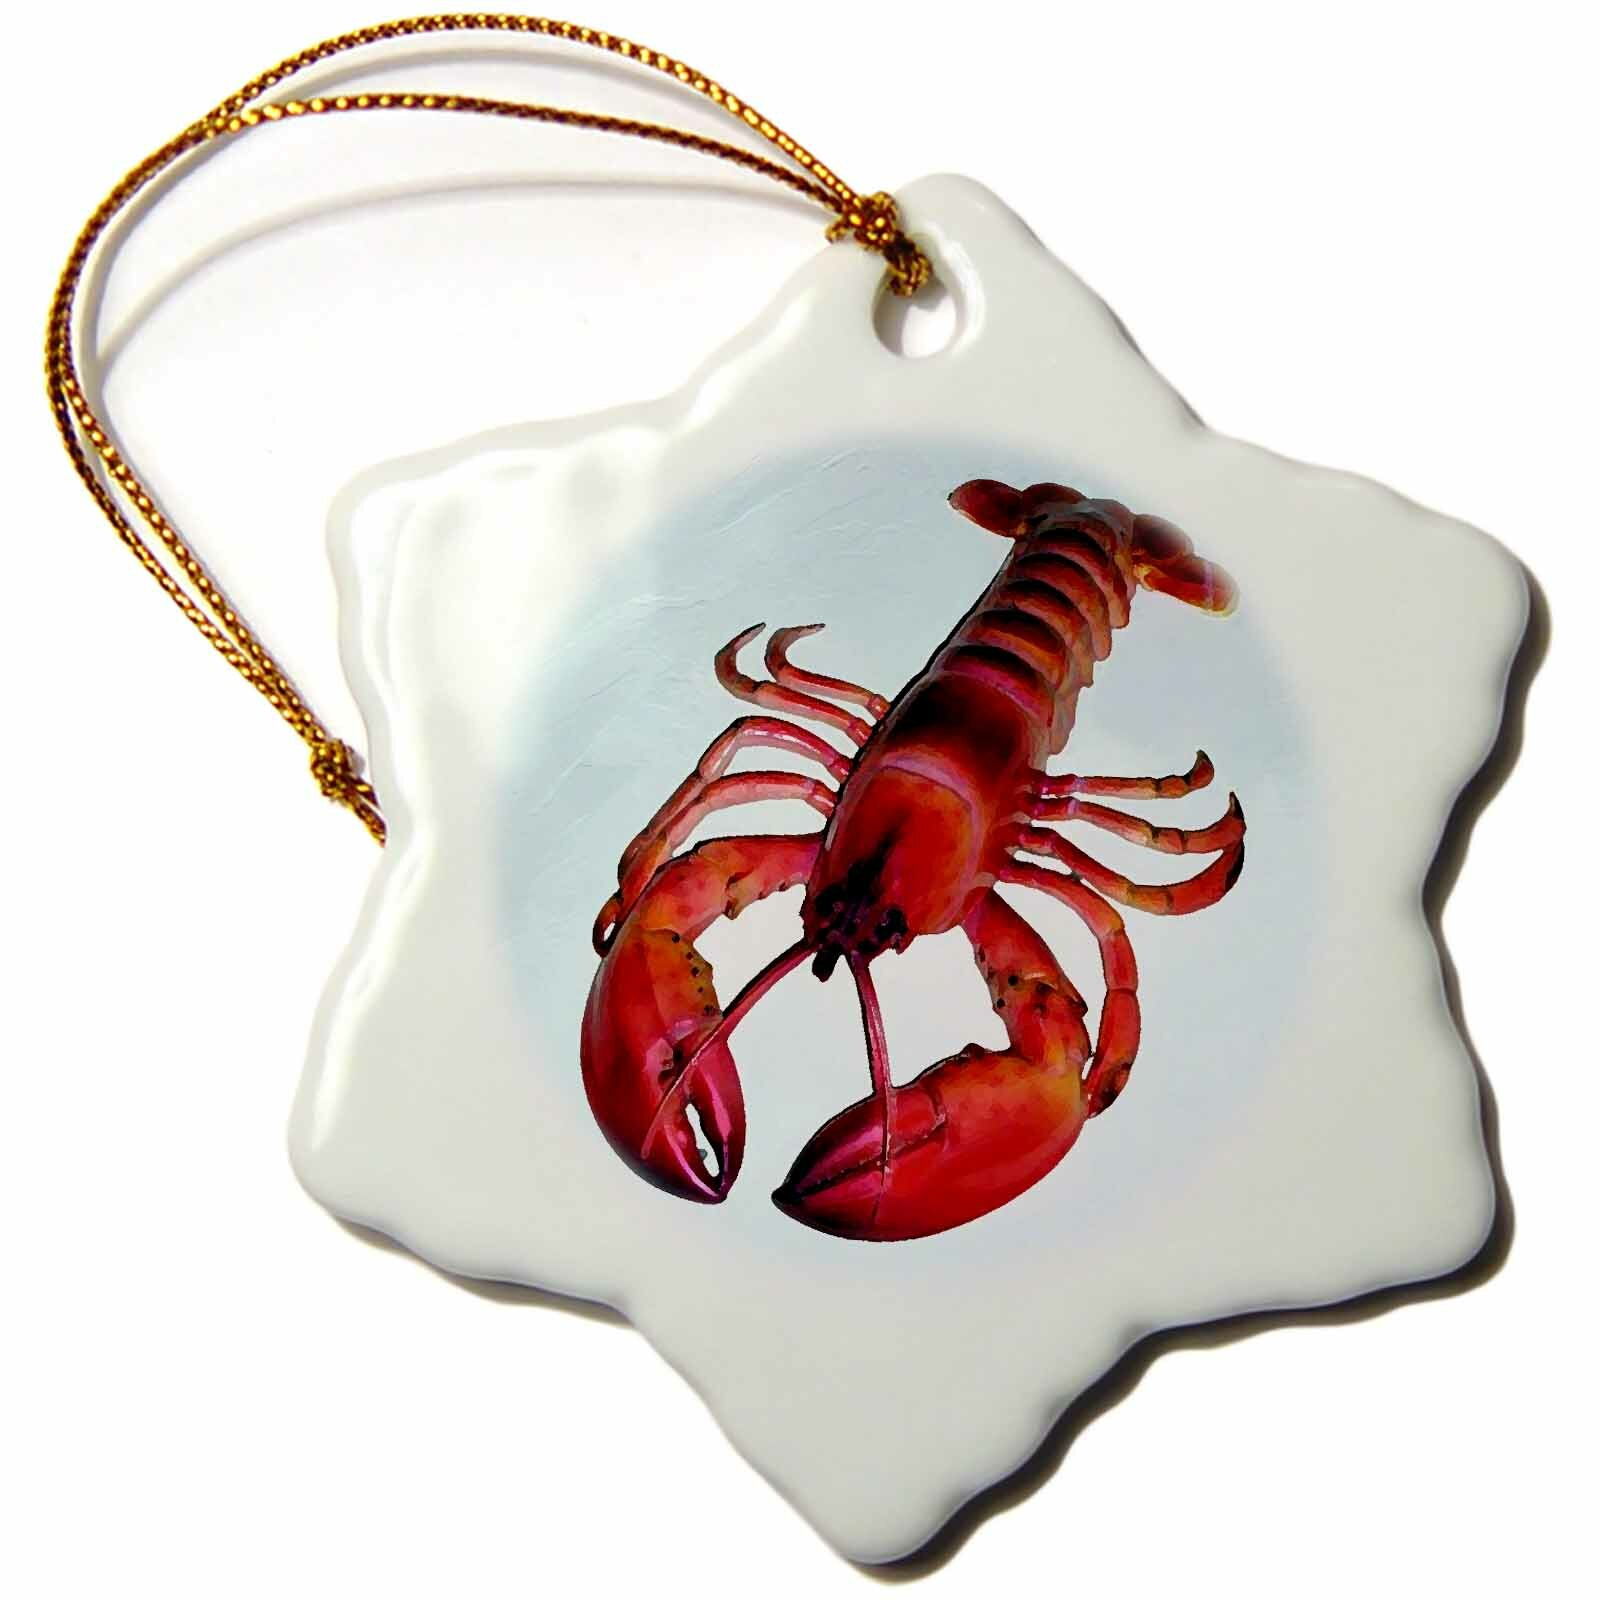 The Holiday Aisle Lobster Holiday Shaped Ornament Wayfair